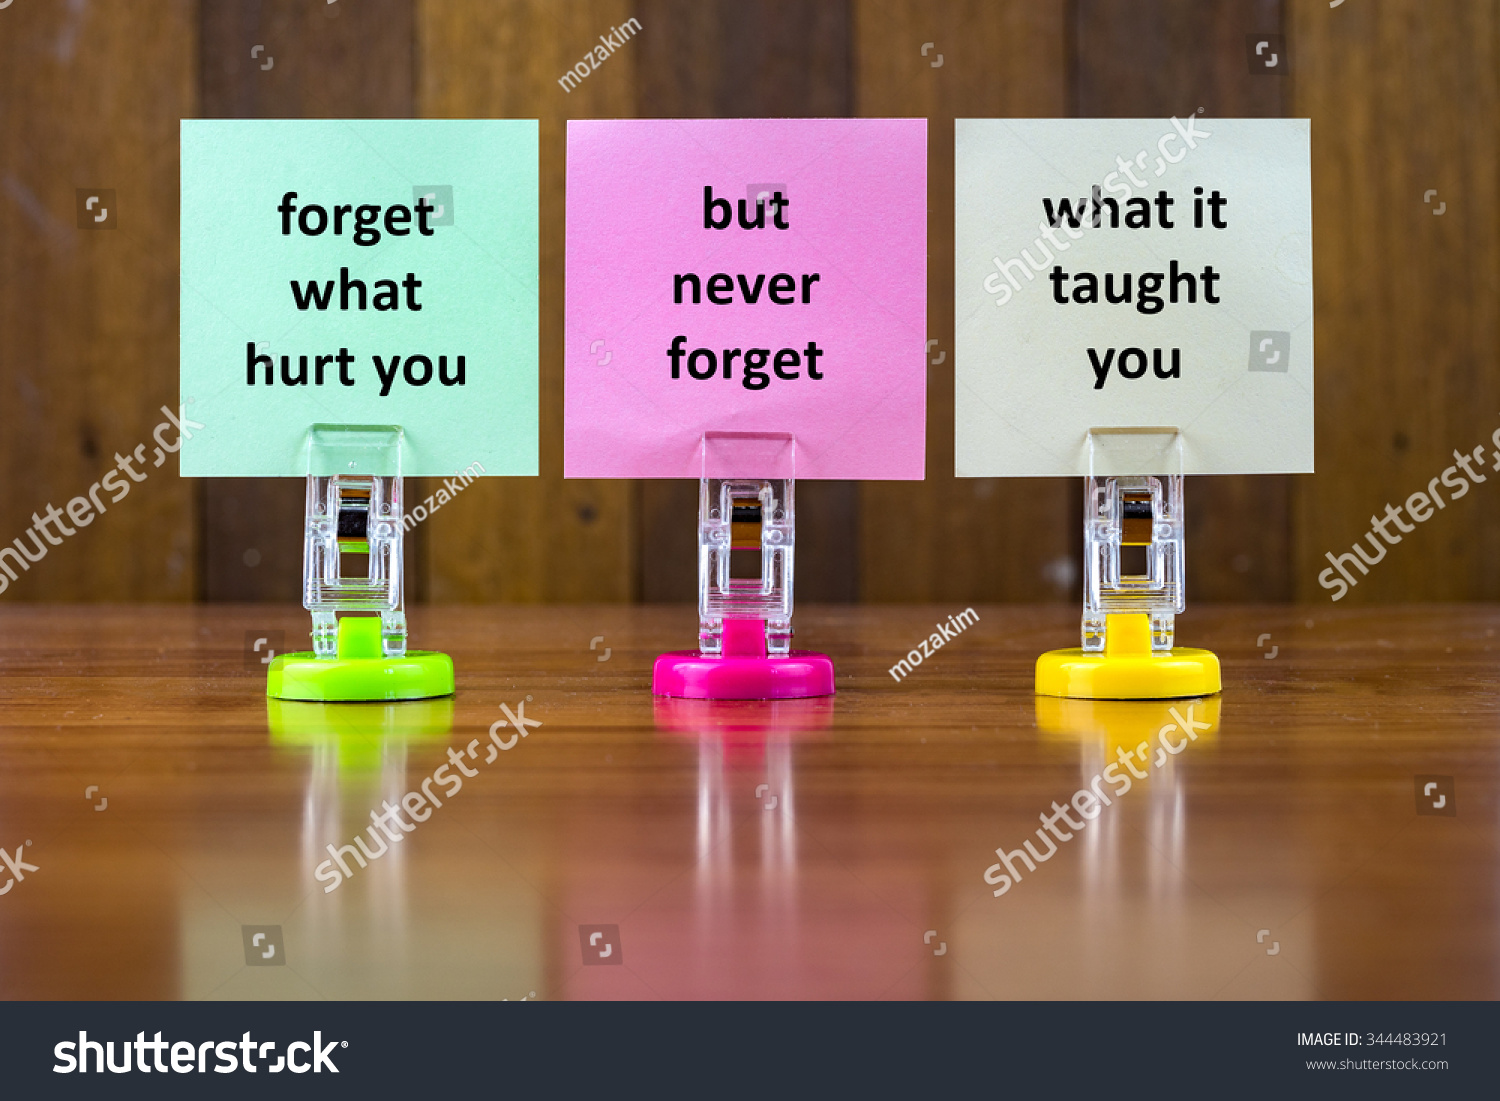 Word Quotes Of FORGET WHAT HURT YOU BUT NEVER FORGET WHAT IT TAUGHT YOU On  Colorful